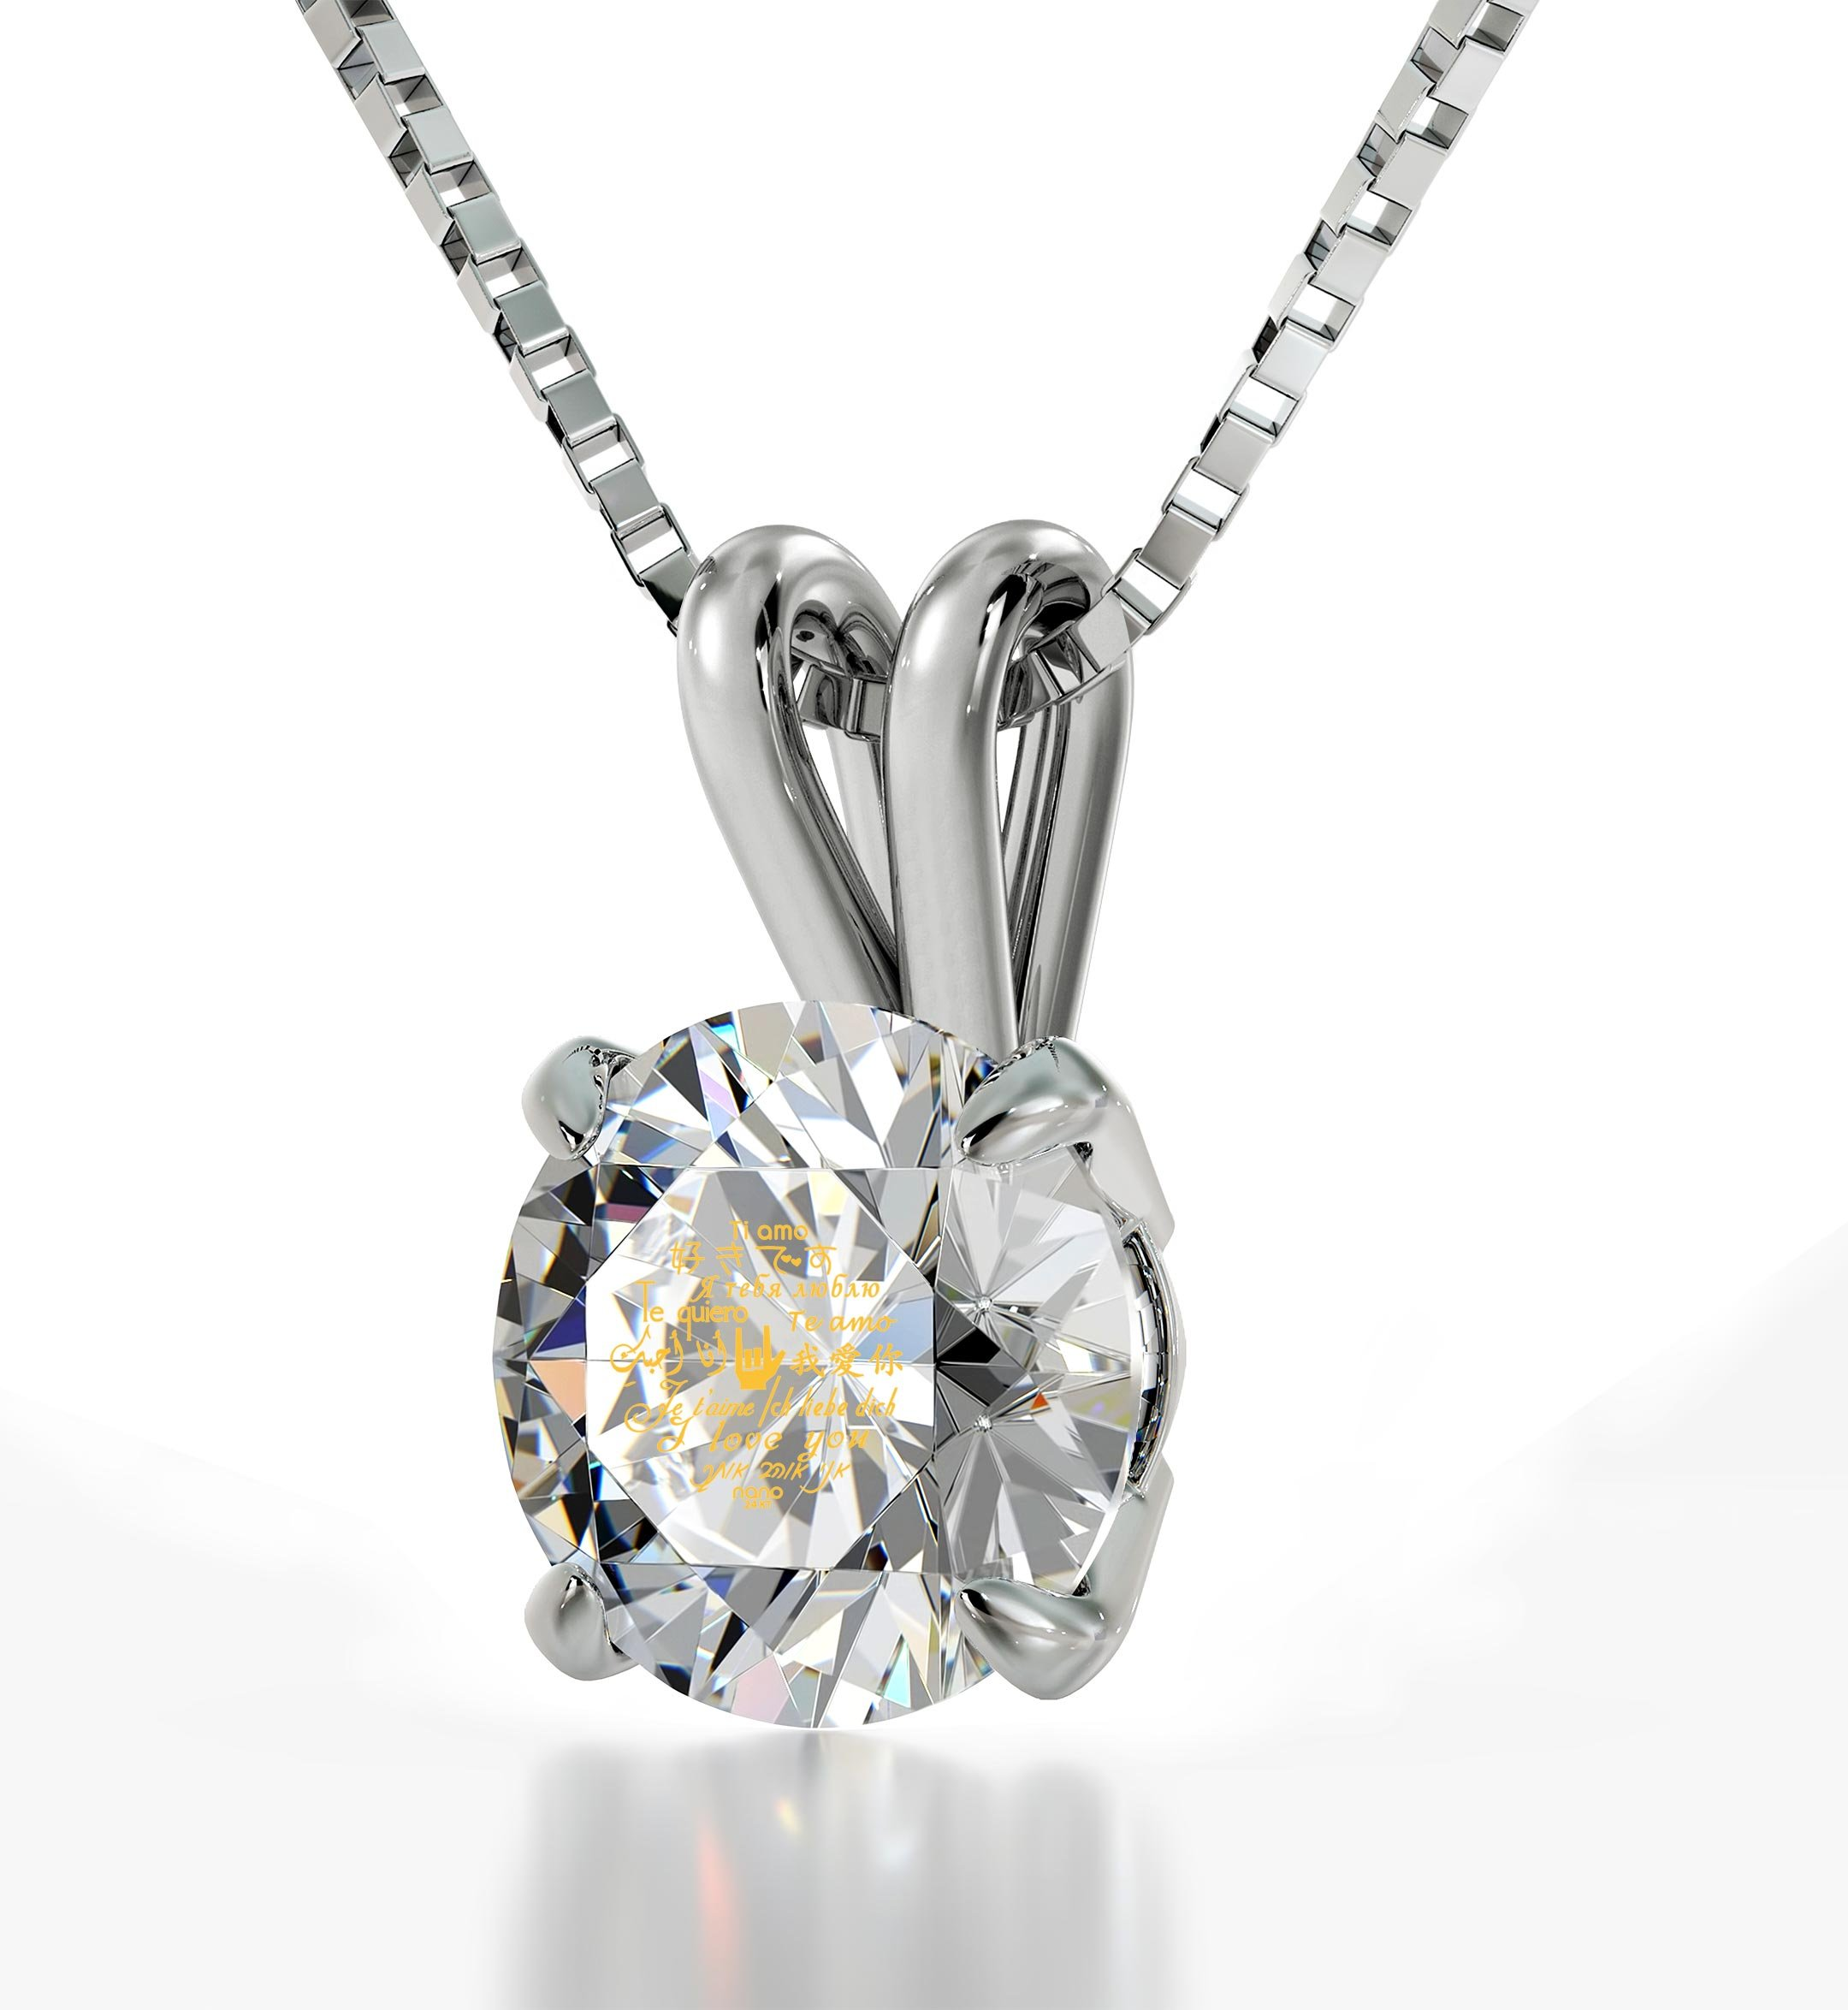 """Nano Jewelry 925 Sterling Silver I Love You Necklace in 12 Languages Inscribed in 24k Gold Including Sign Language in Miniature Text onto a Round Crystal Solitaire Pendant, 18"""" Box Chain"""